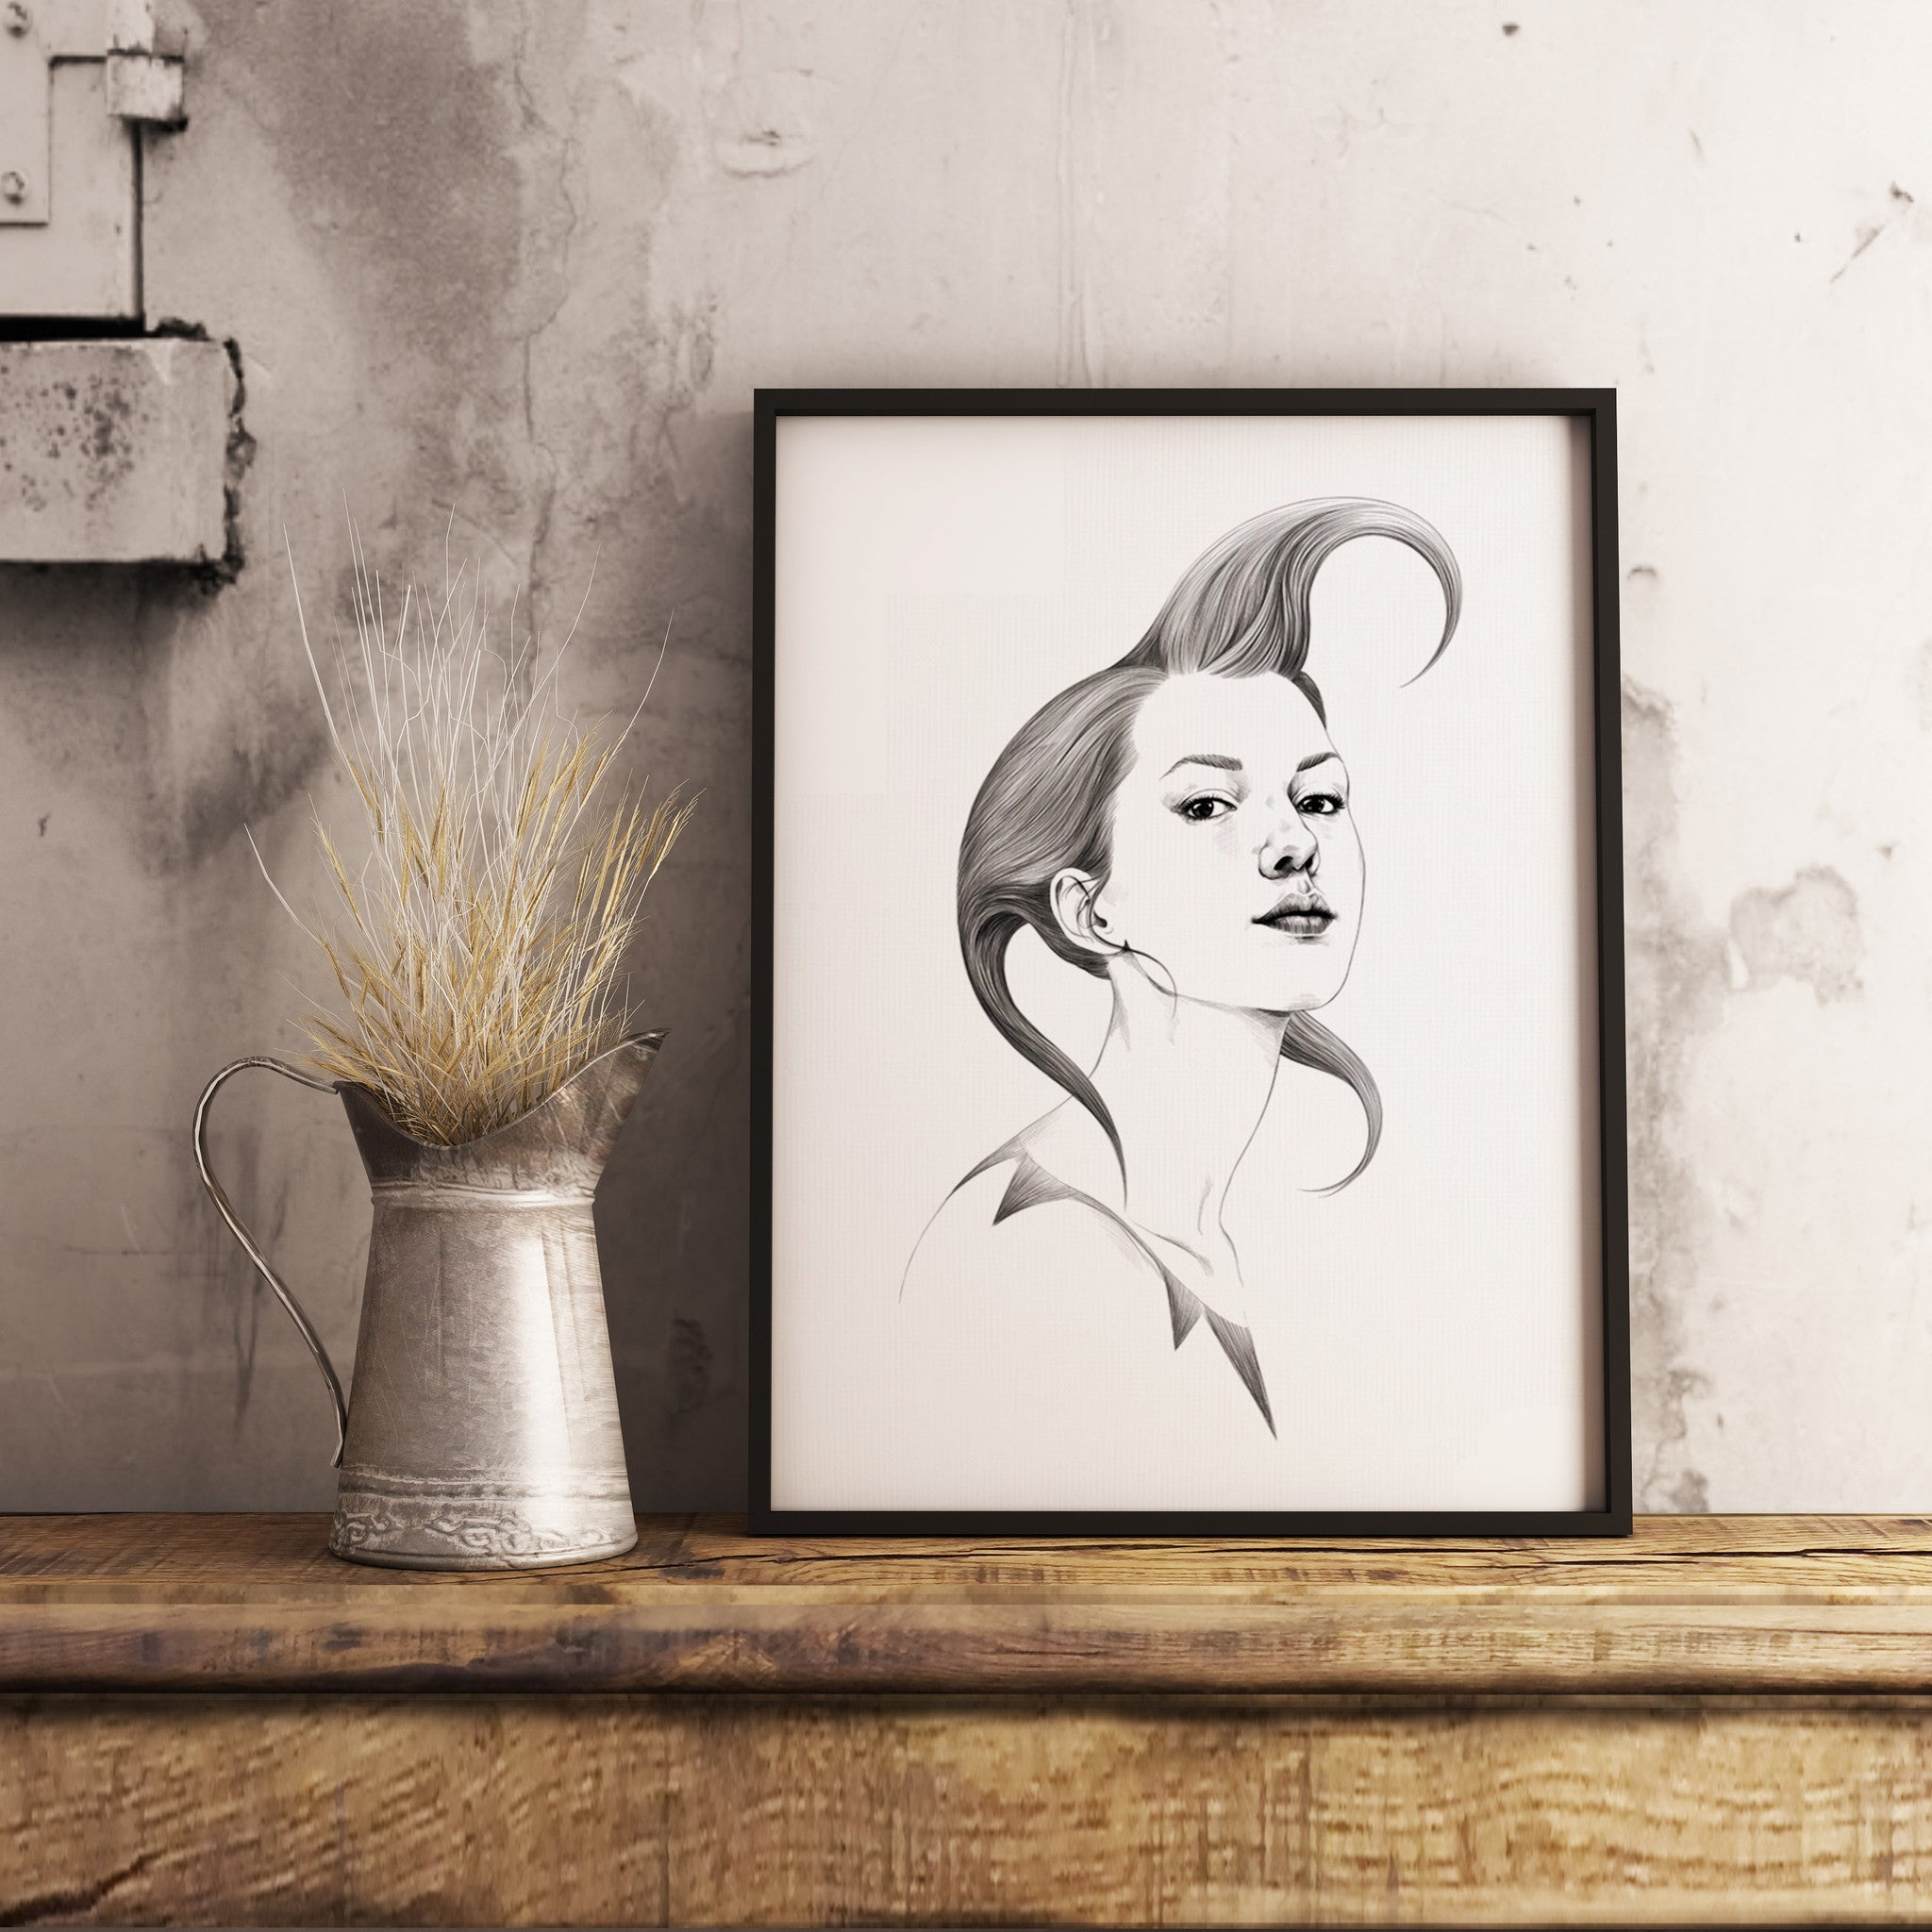 Pencil sketch framed wall art